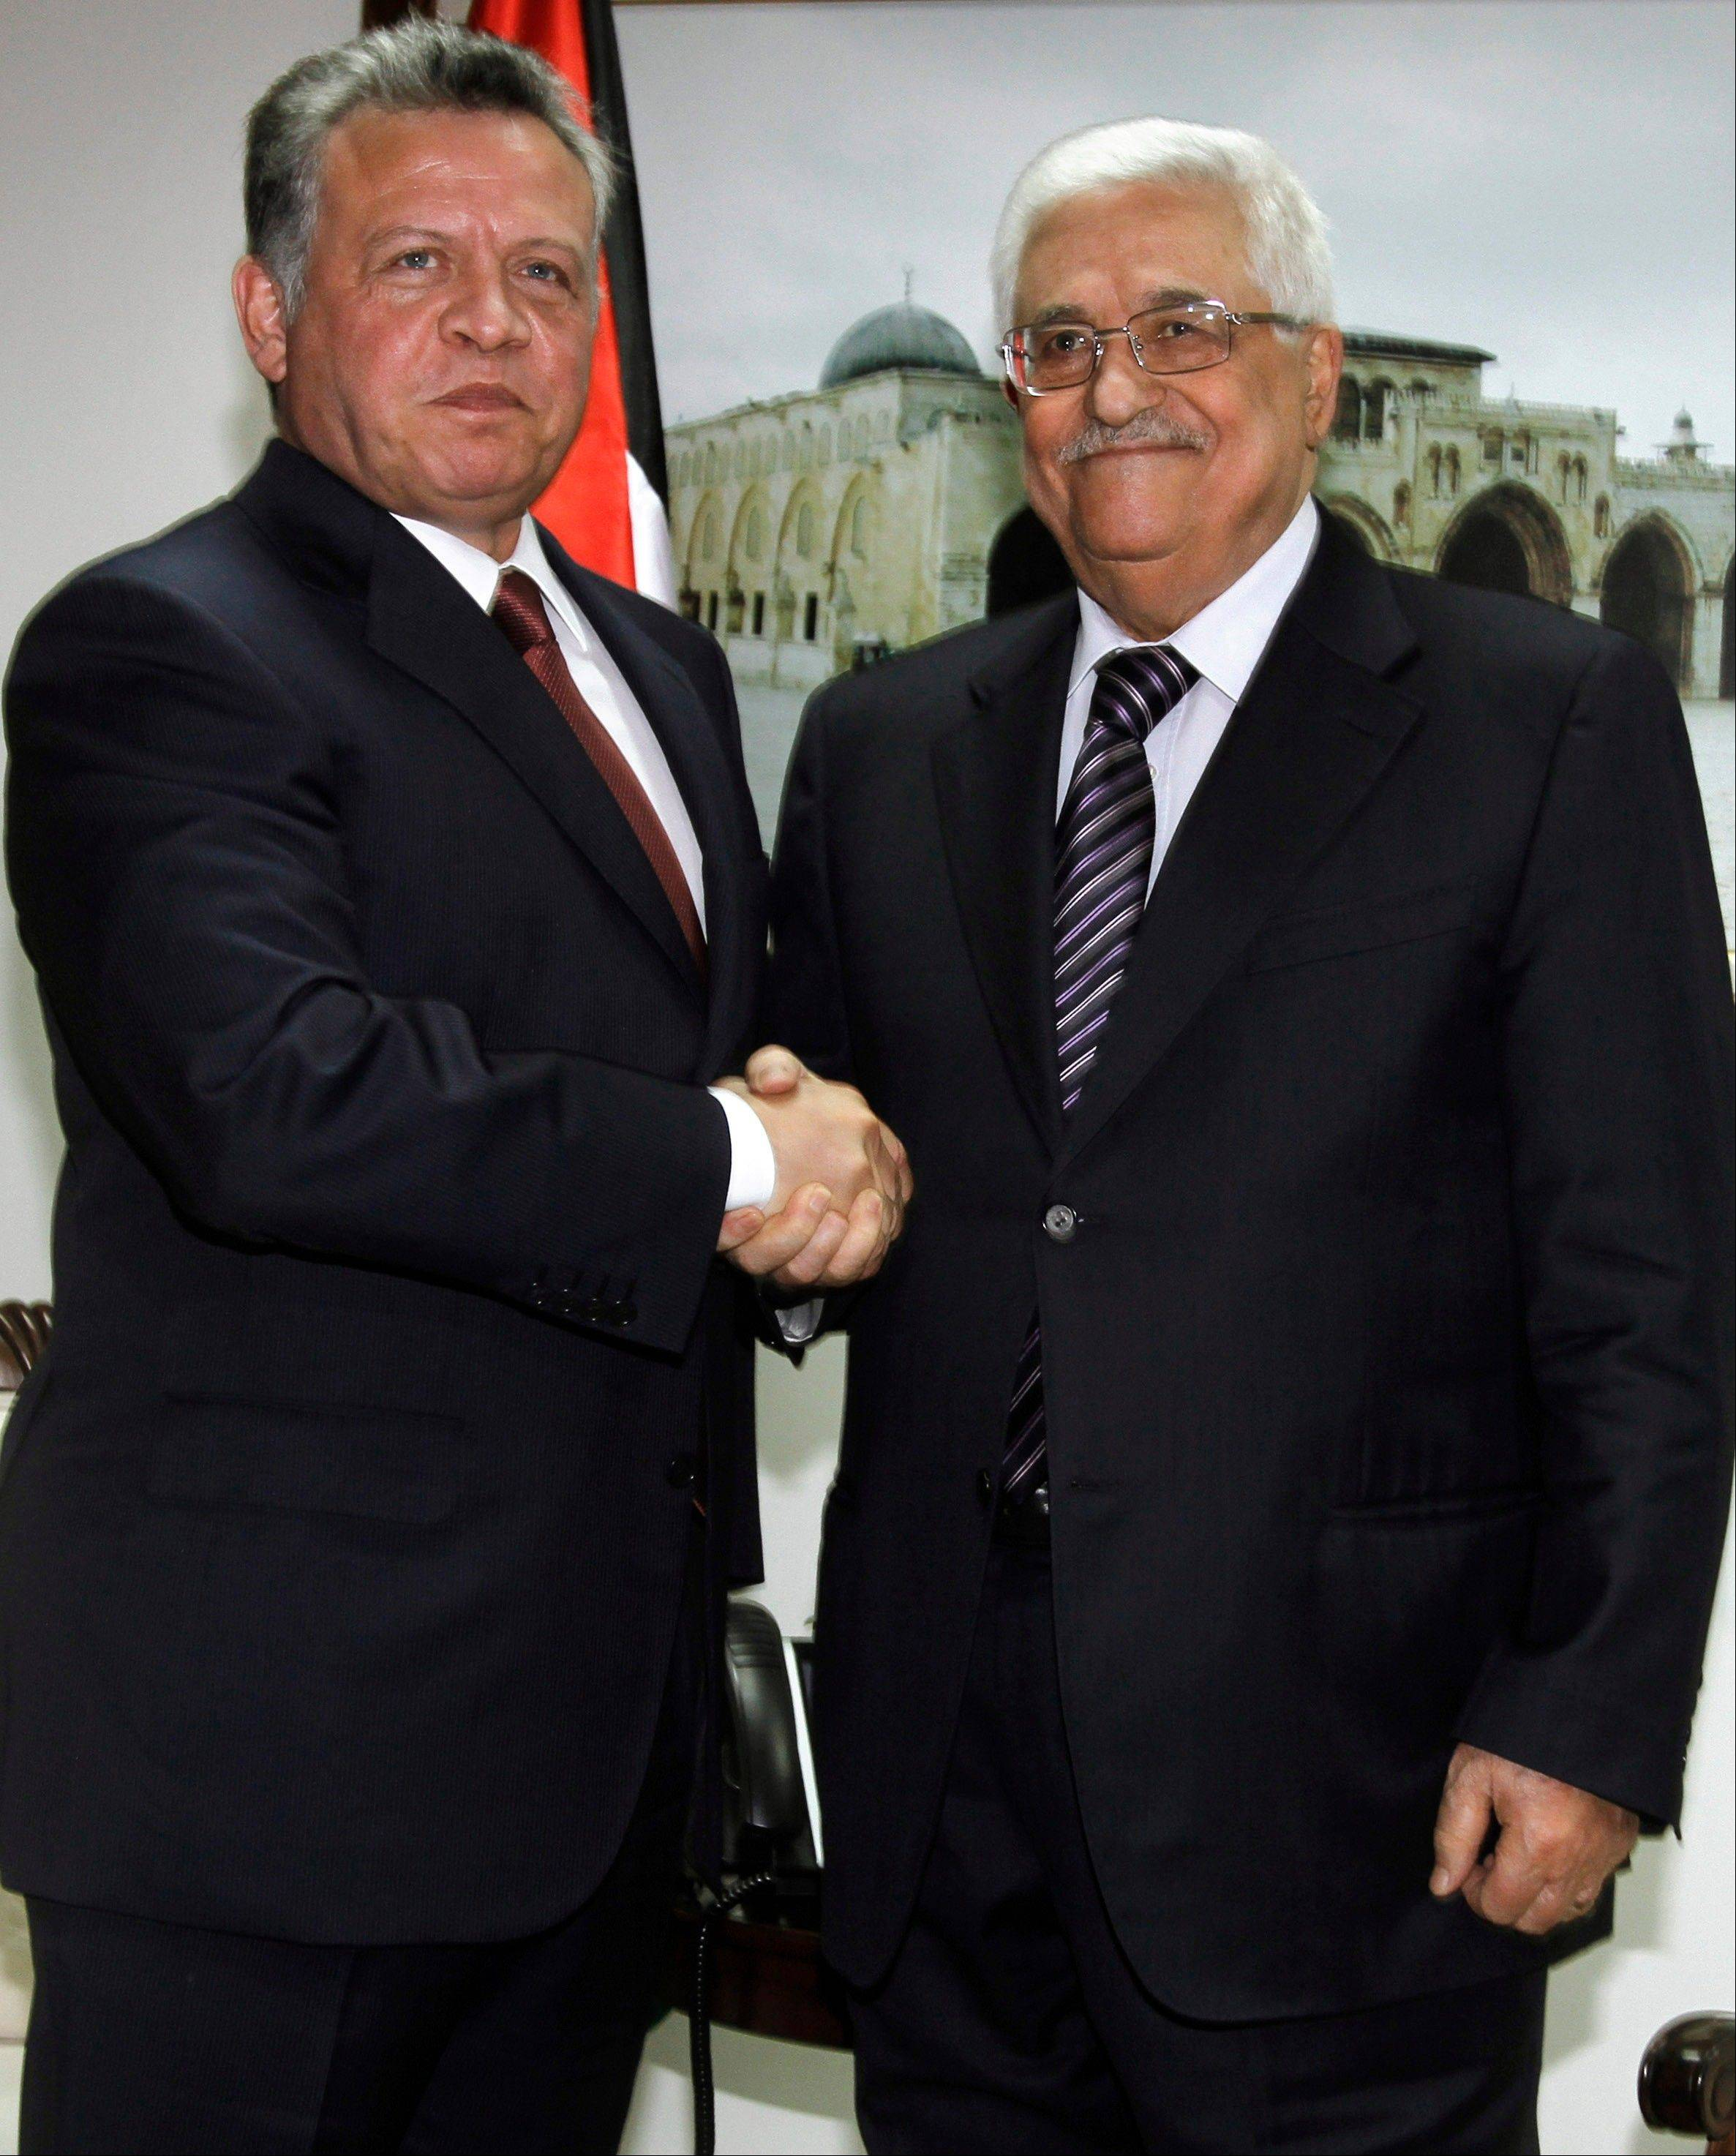 Jordan�s King Abdullah II has begun a brief visit to the West Bank in support of Palestinian President Mahmoud Abbas� successful bid for U.N. recognition of a state of Palestine.